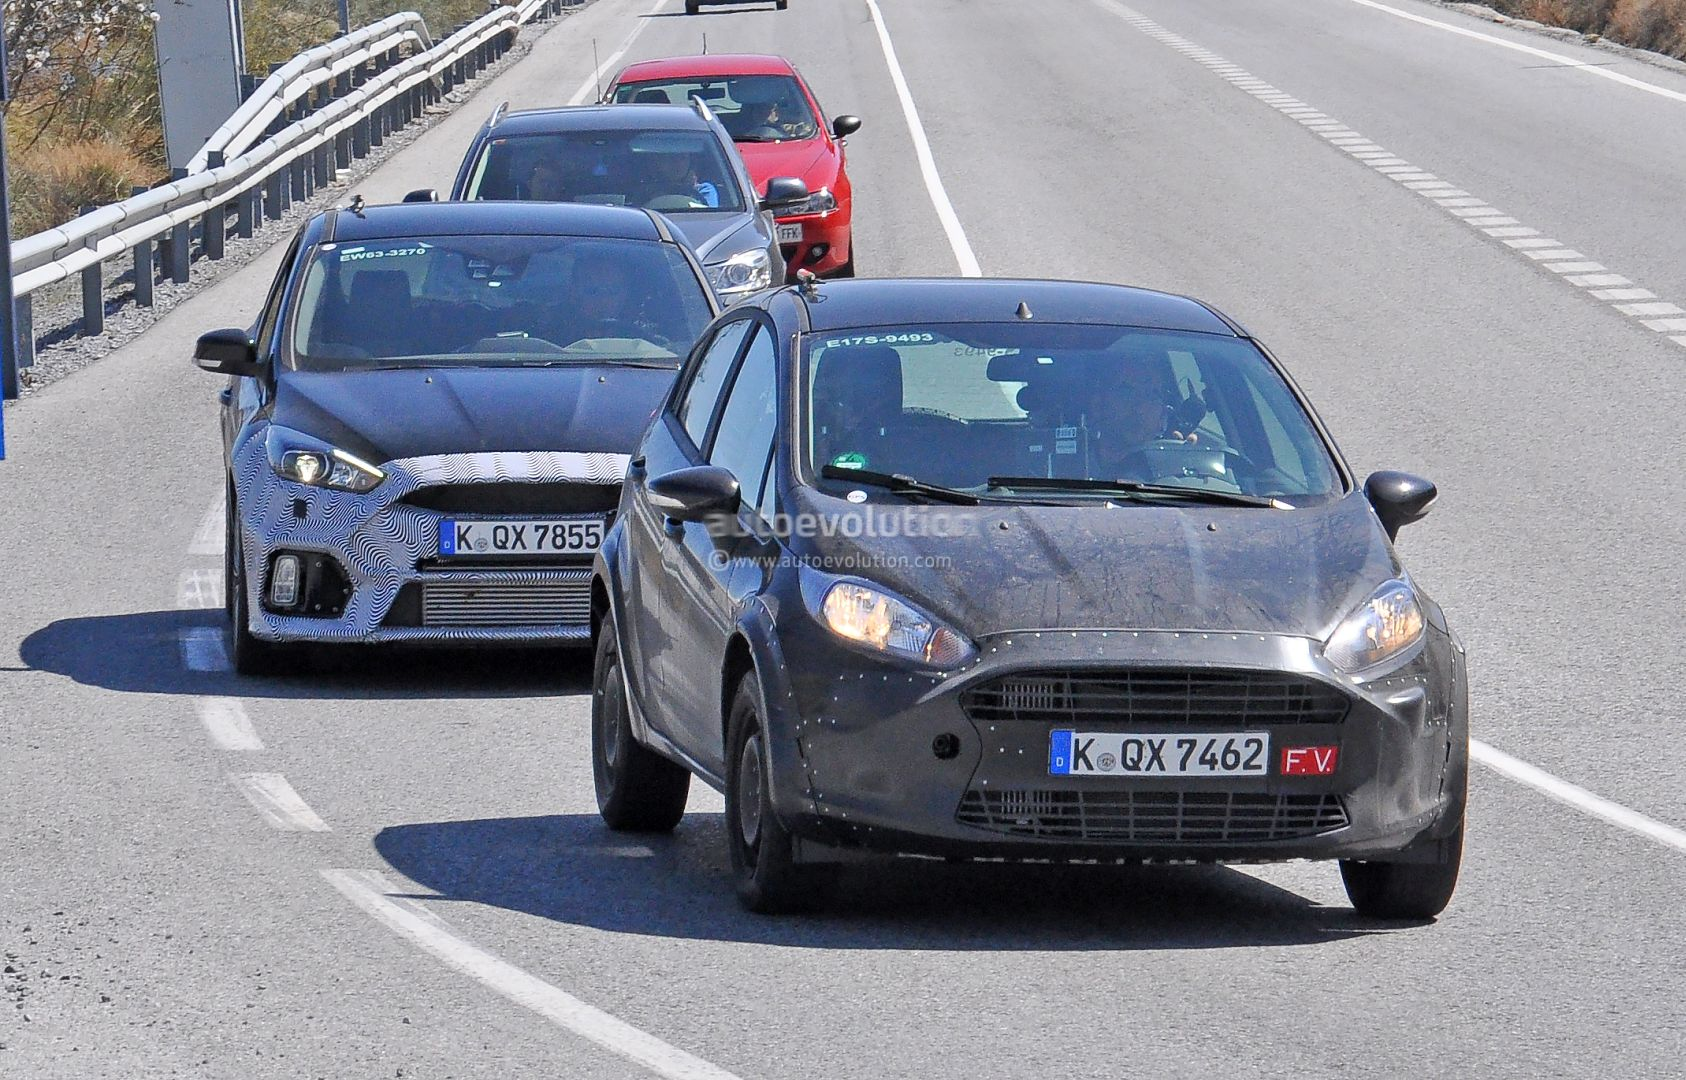 2017 Ford Fiesta RS Spied for the First Time - autoevolution